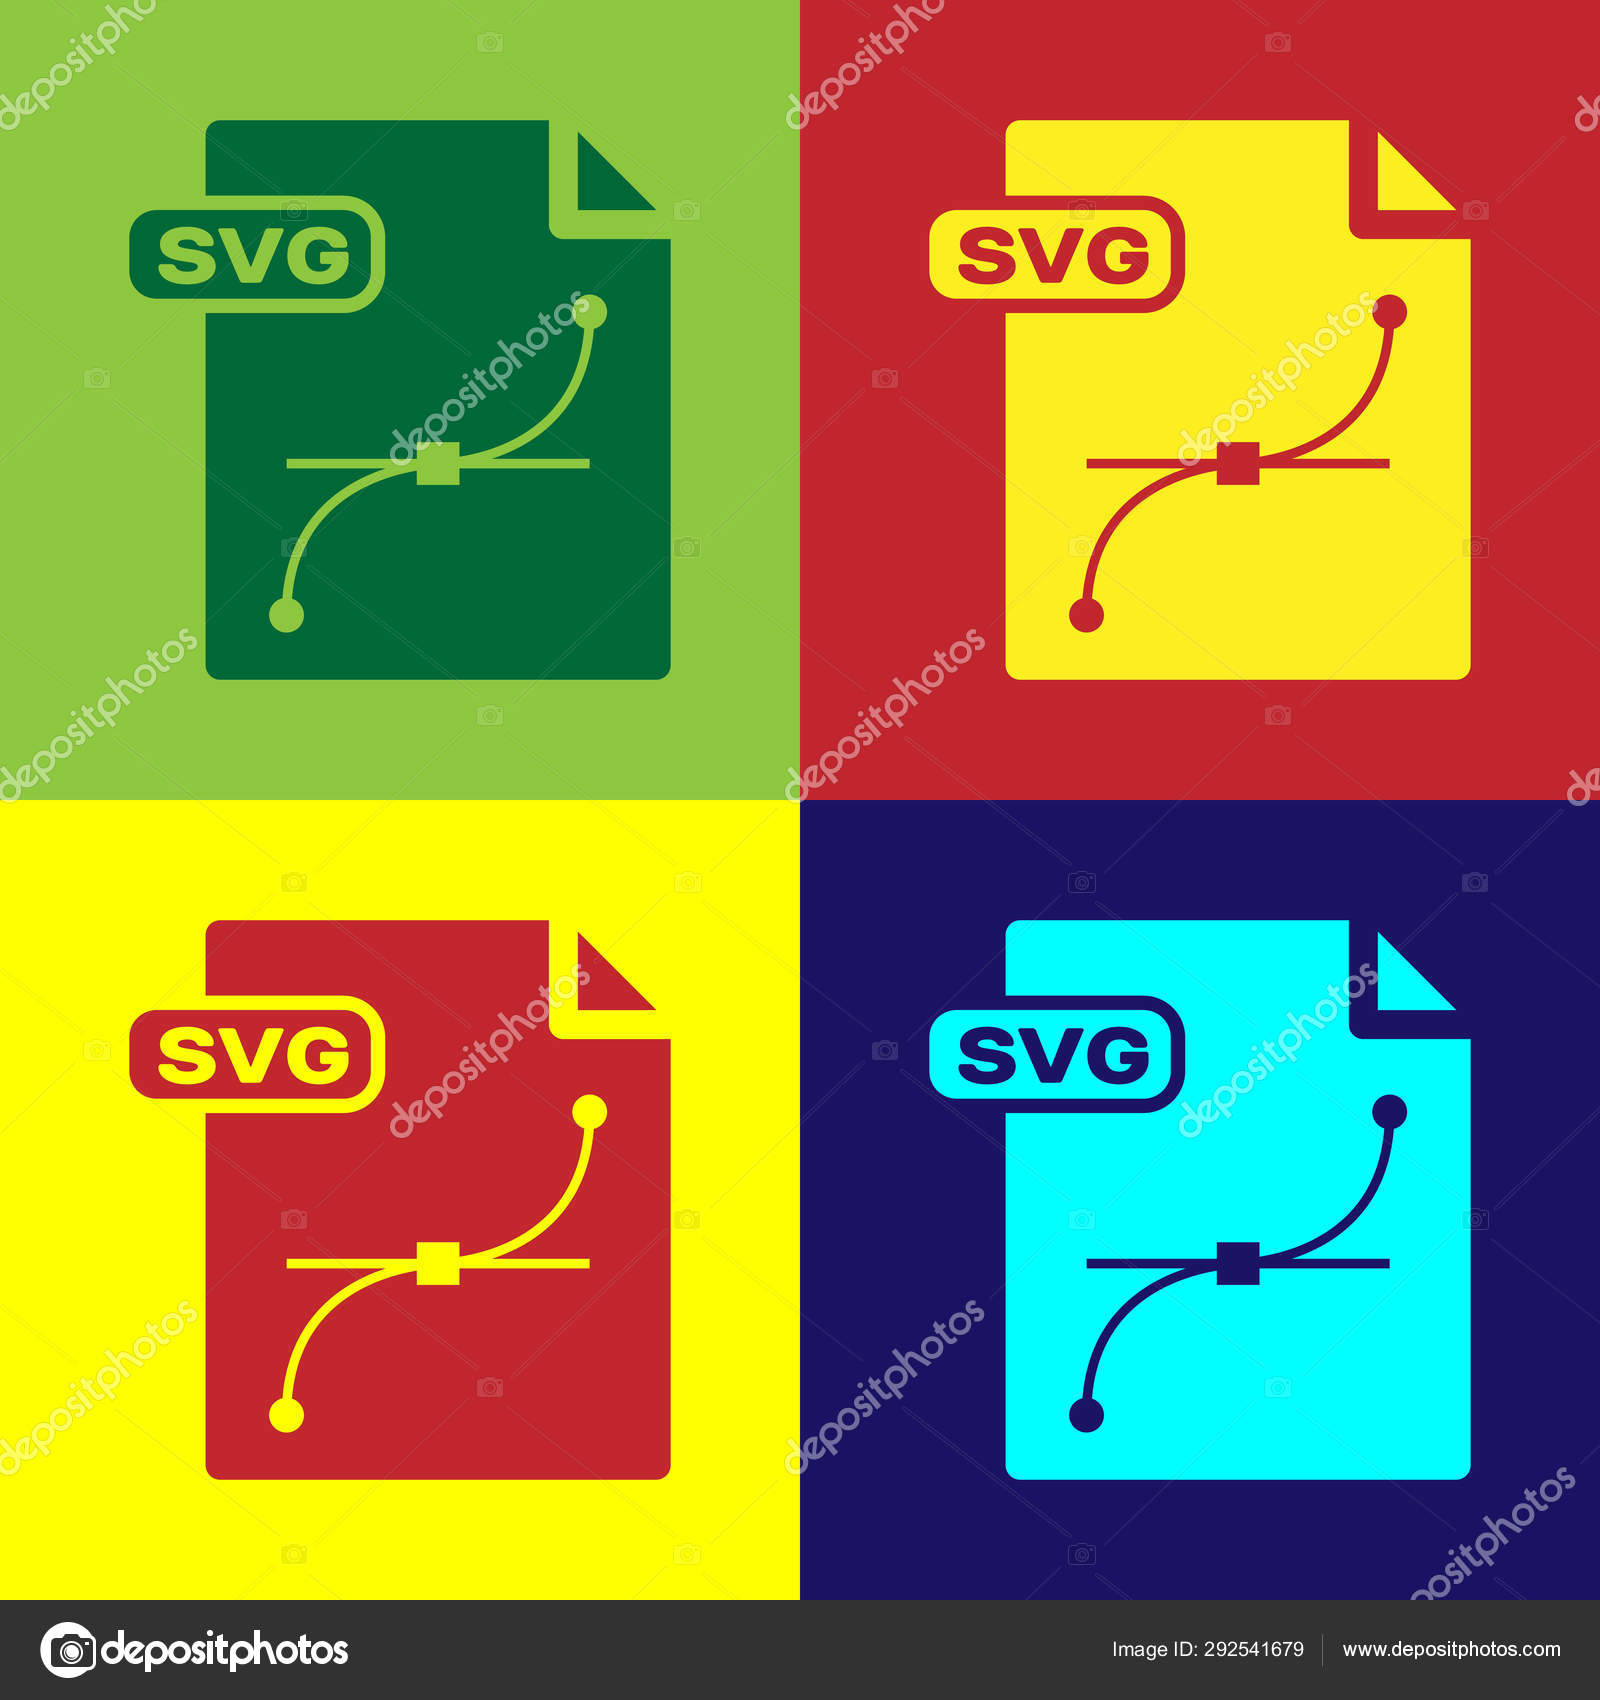 Color SVG file document  Download svg button icon isolated